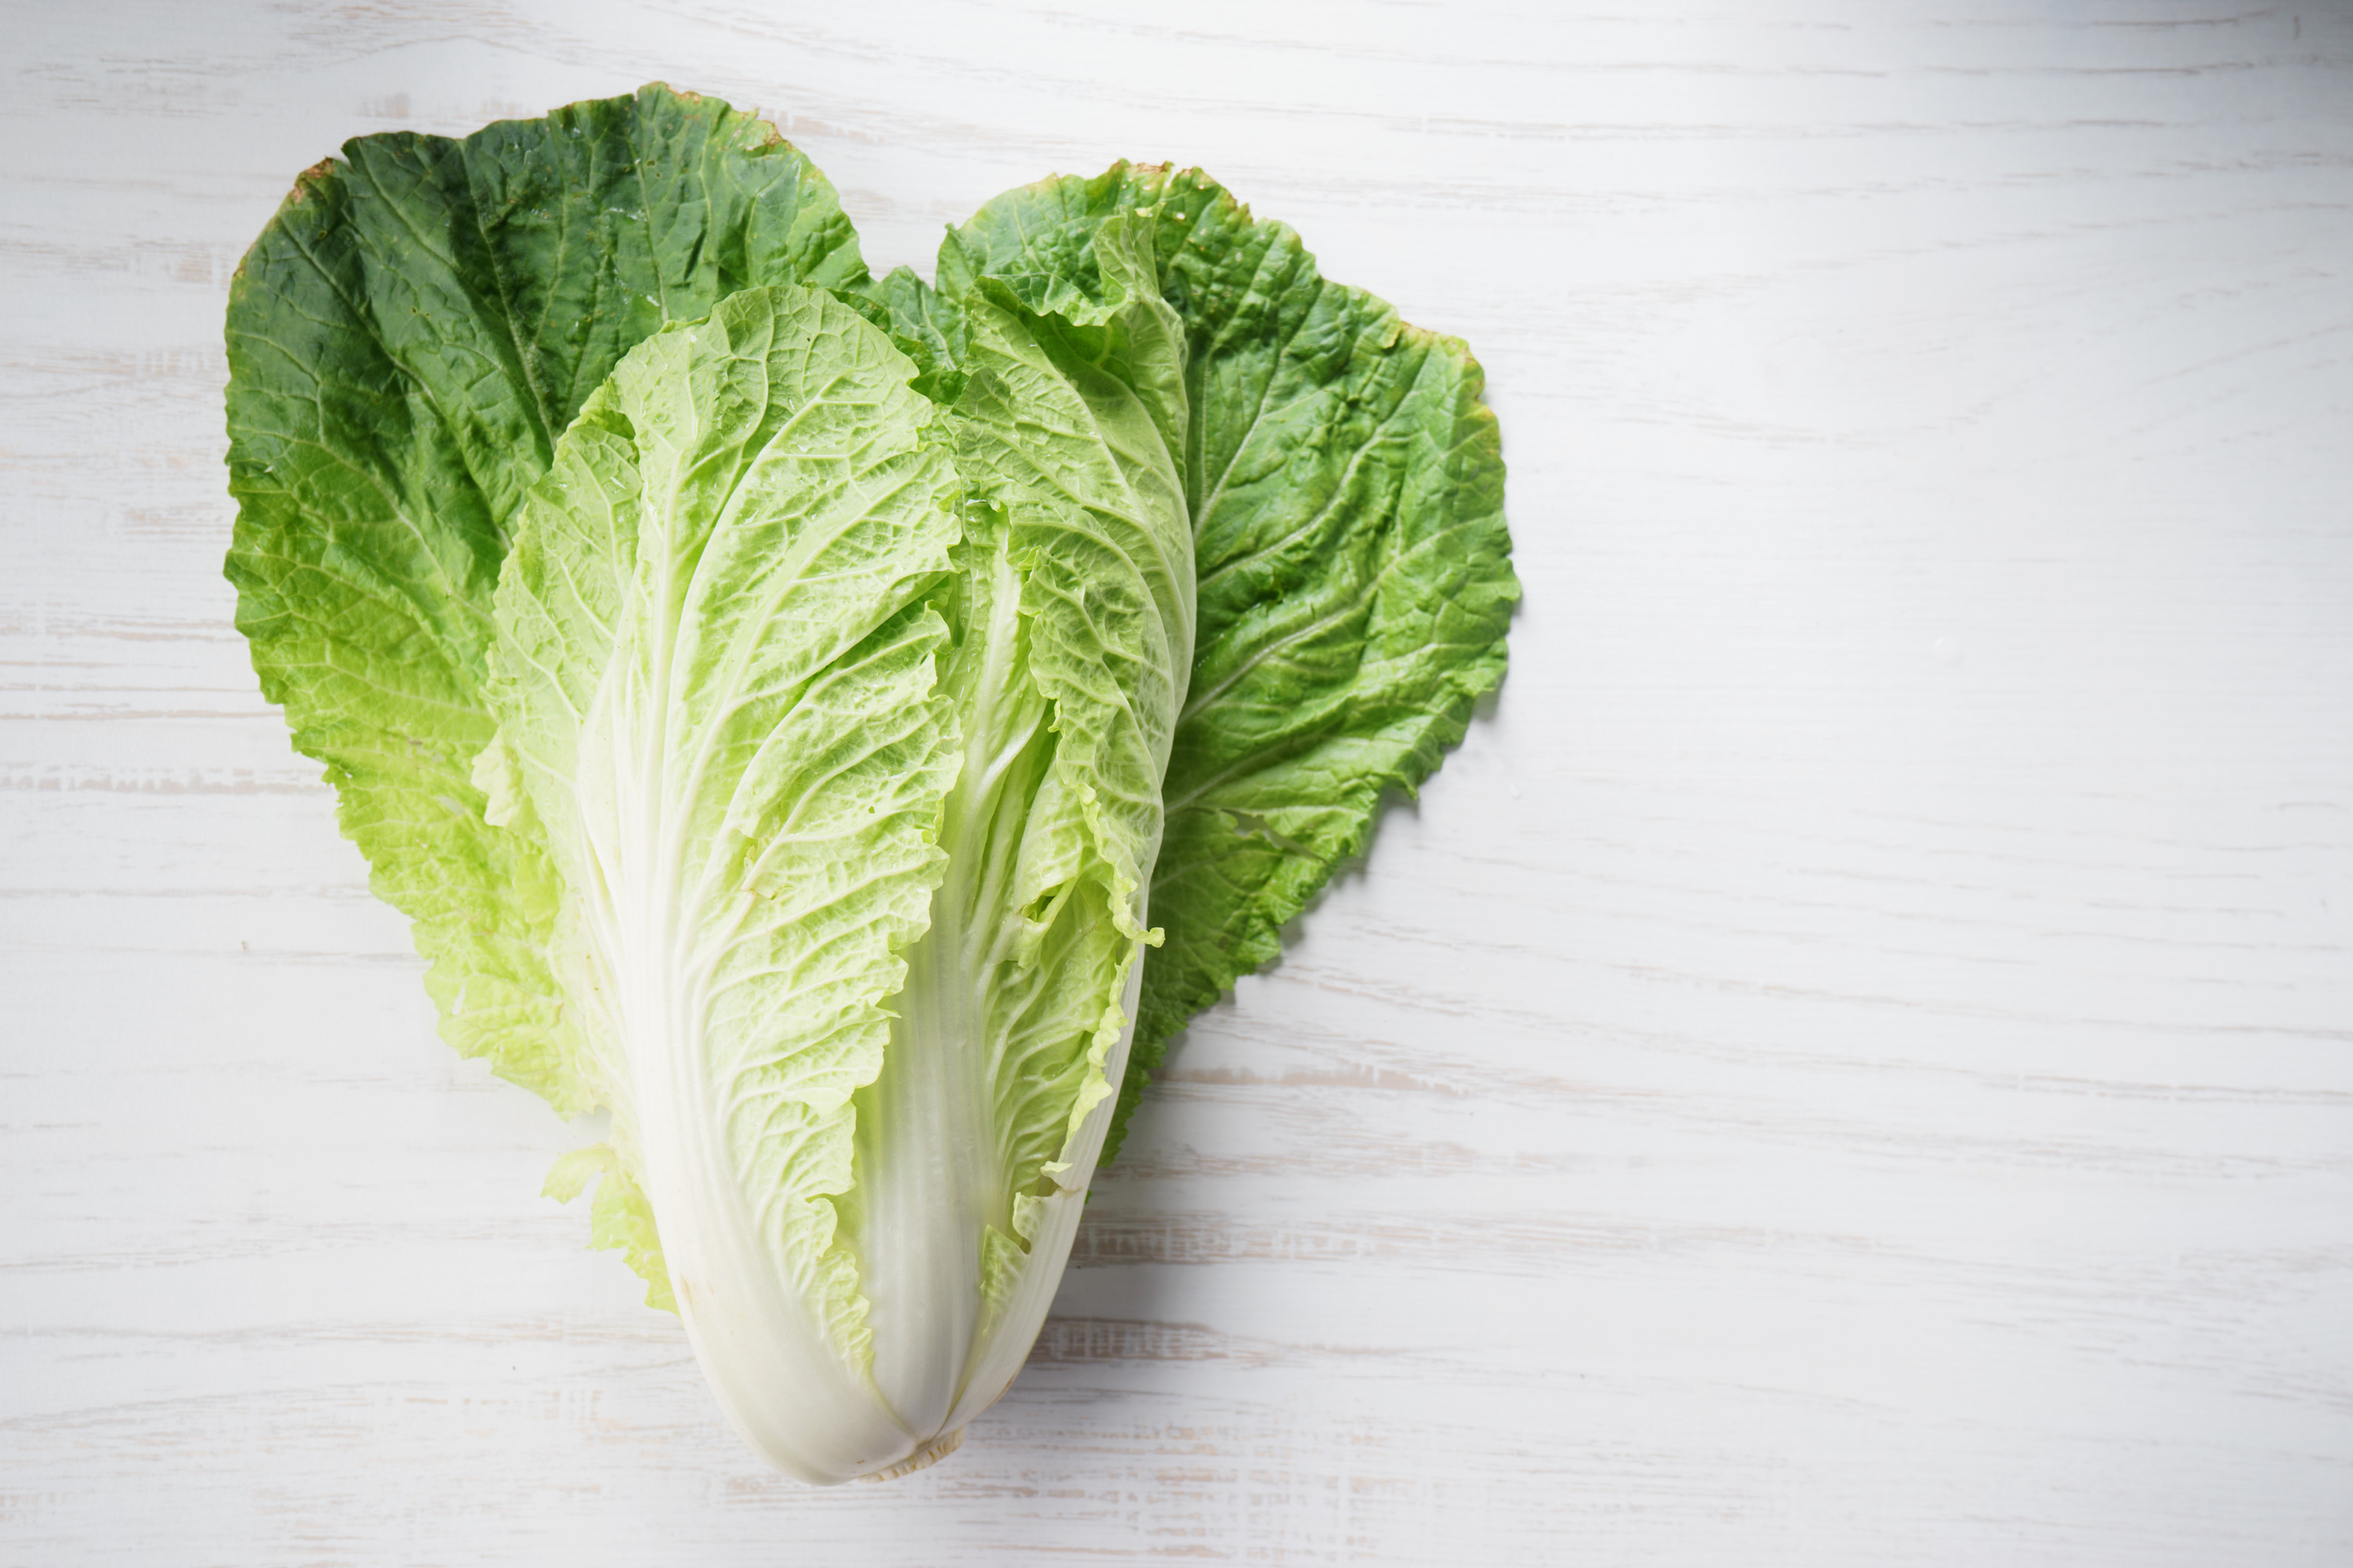 napa cabbage, Chinese cabbage, on wooden background